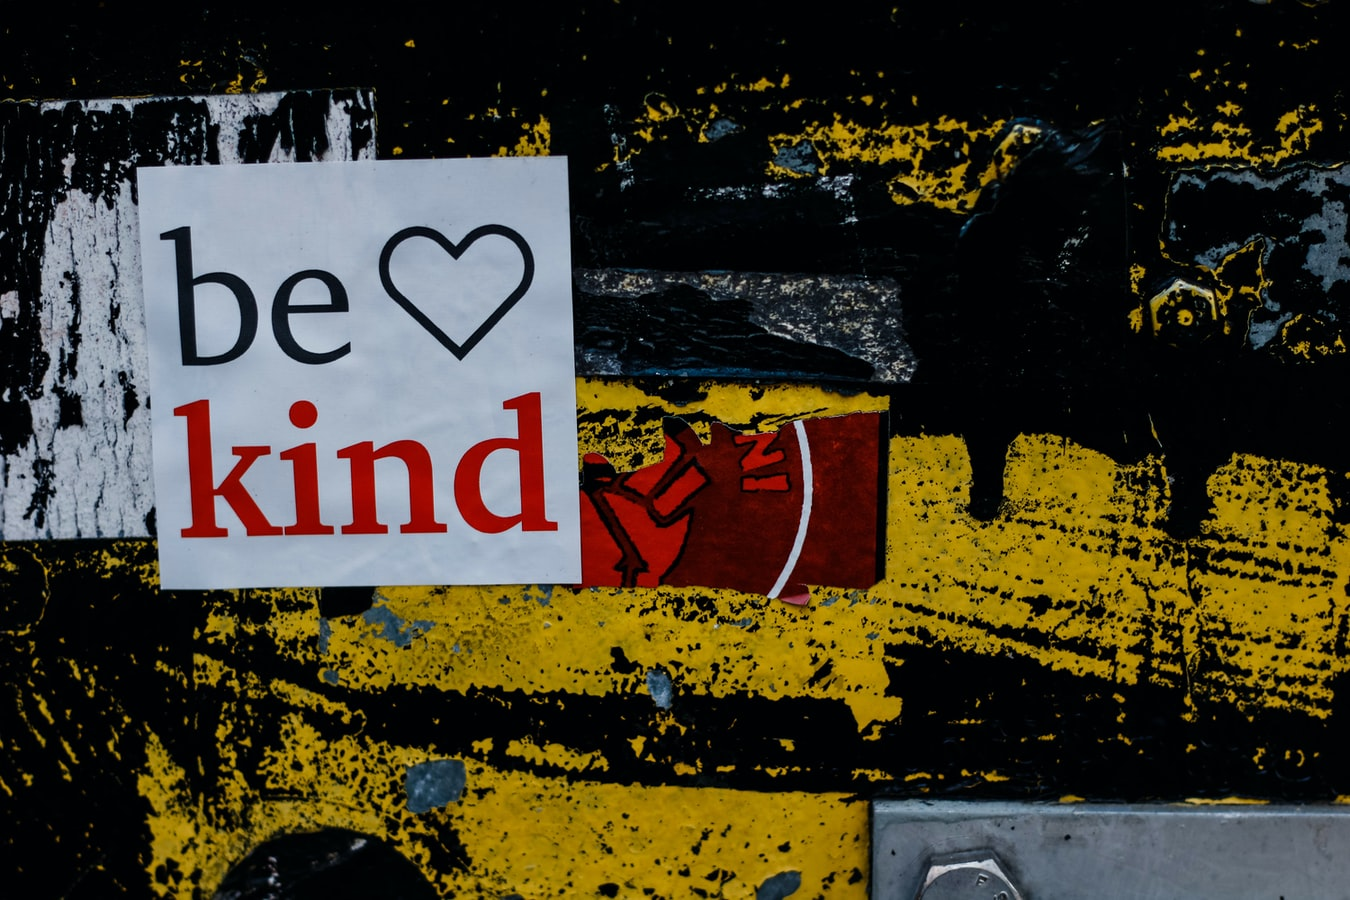 Be kind sign on yellow-painted wall